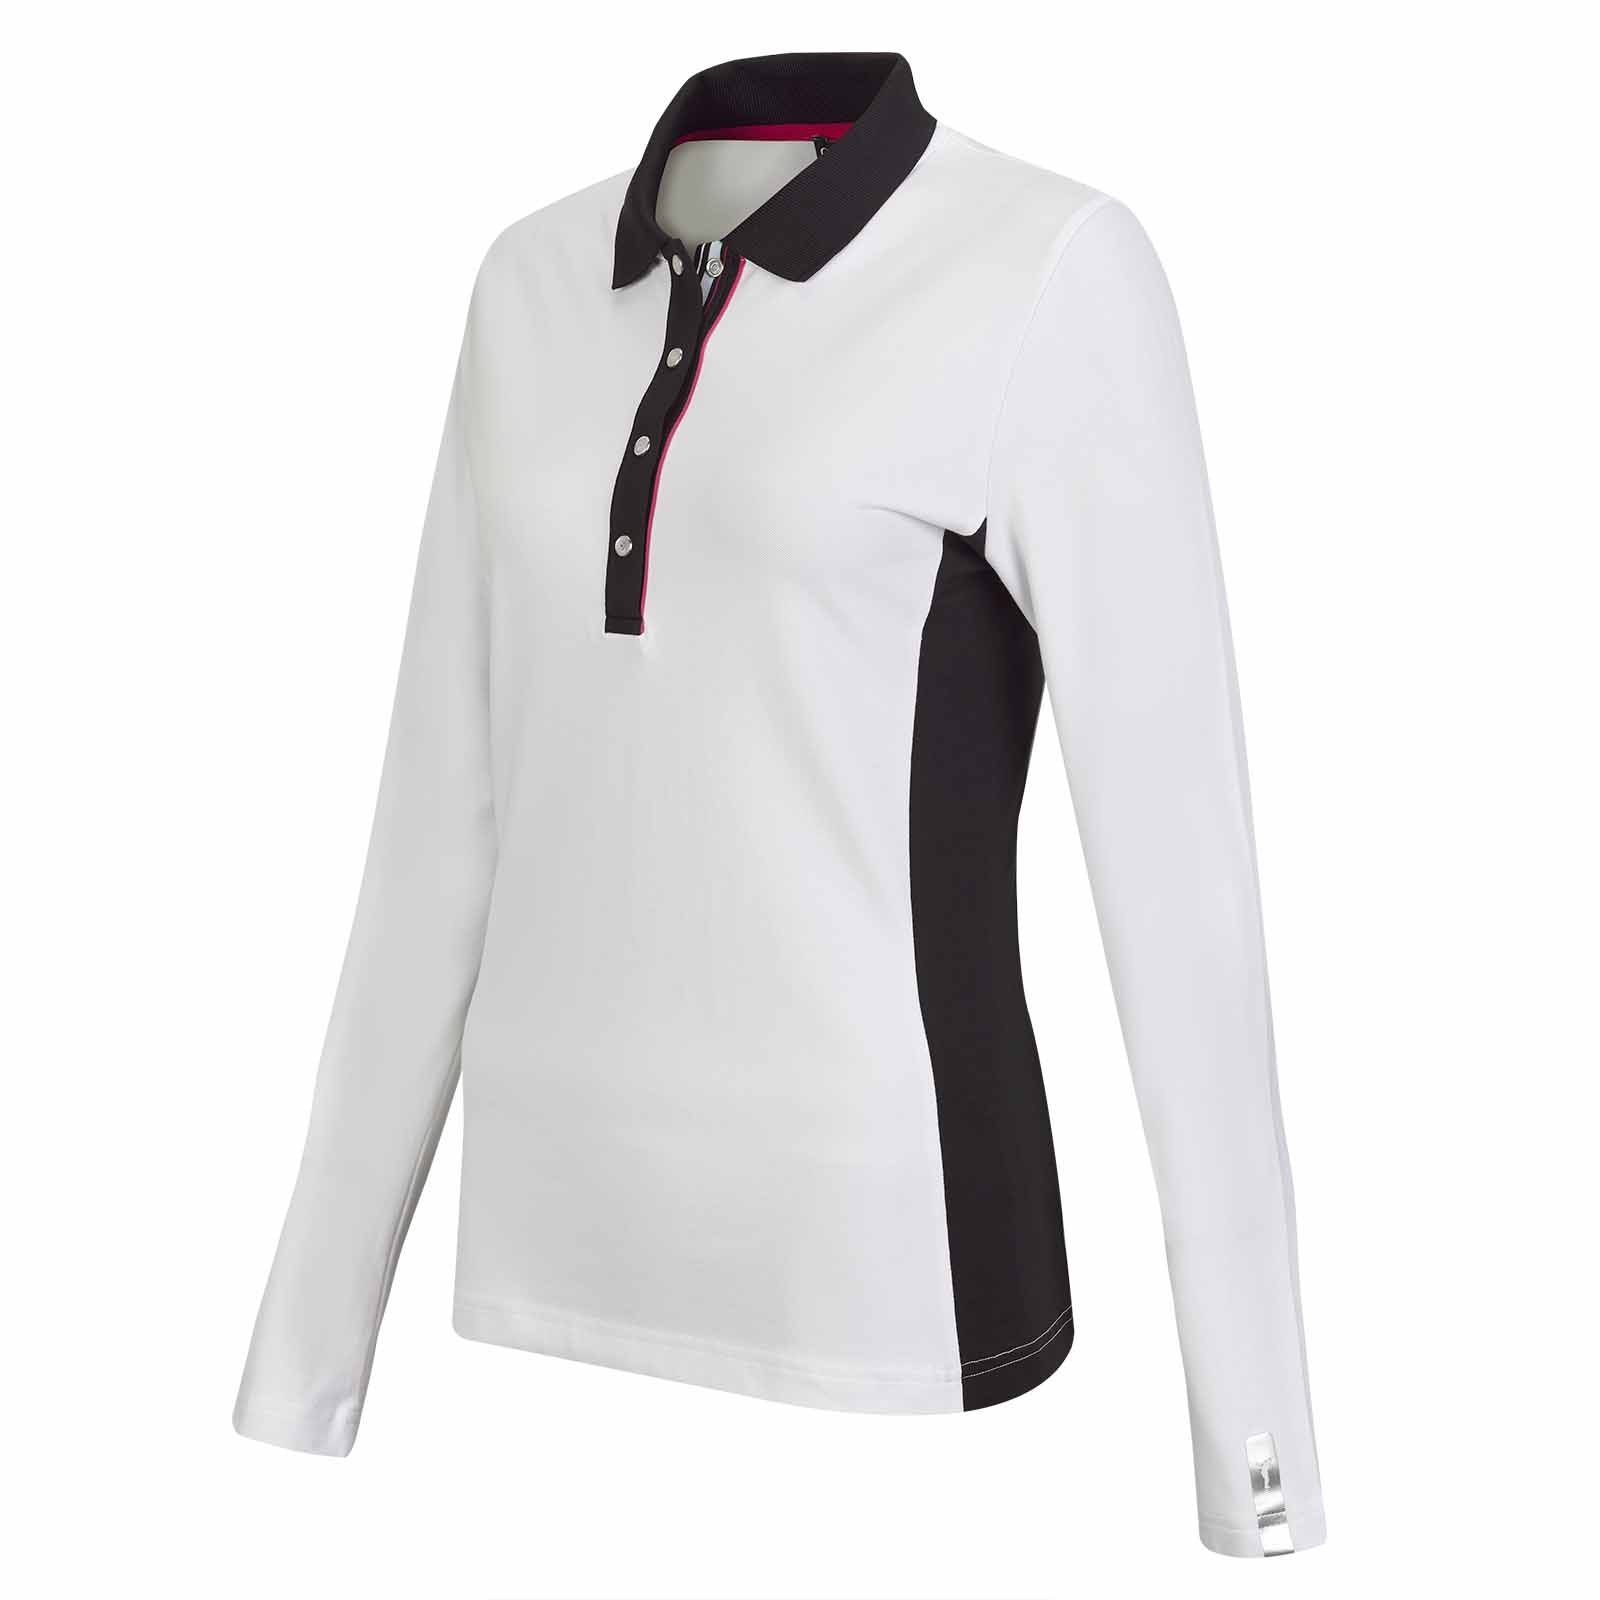 Damen Revolution Langarm Golfpolo mit Sun Protection Funktion